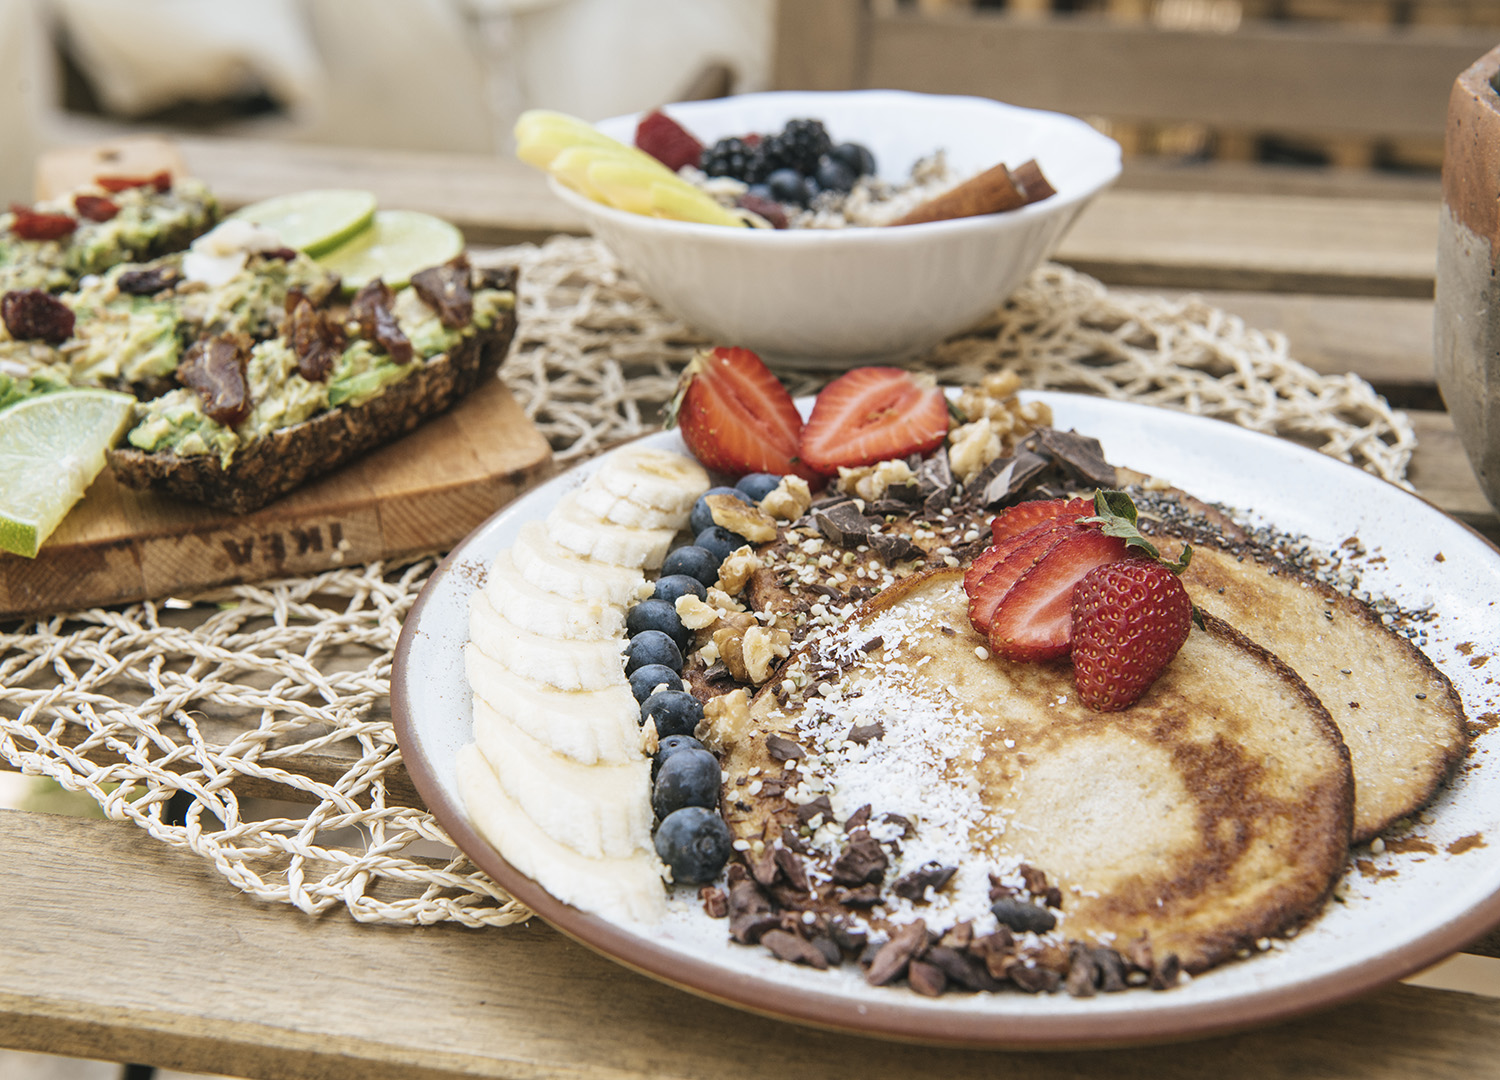 glamping breakfast consisting of pancakes, fruits and berries, served in our Dreamsea Surf Camp Portugal Alentejo